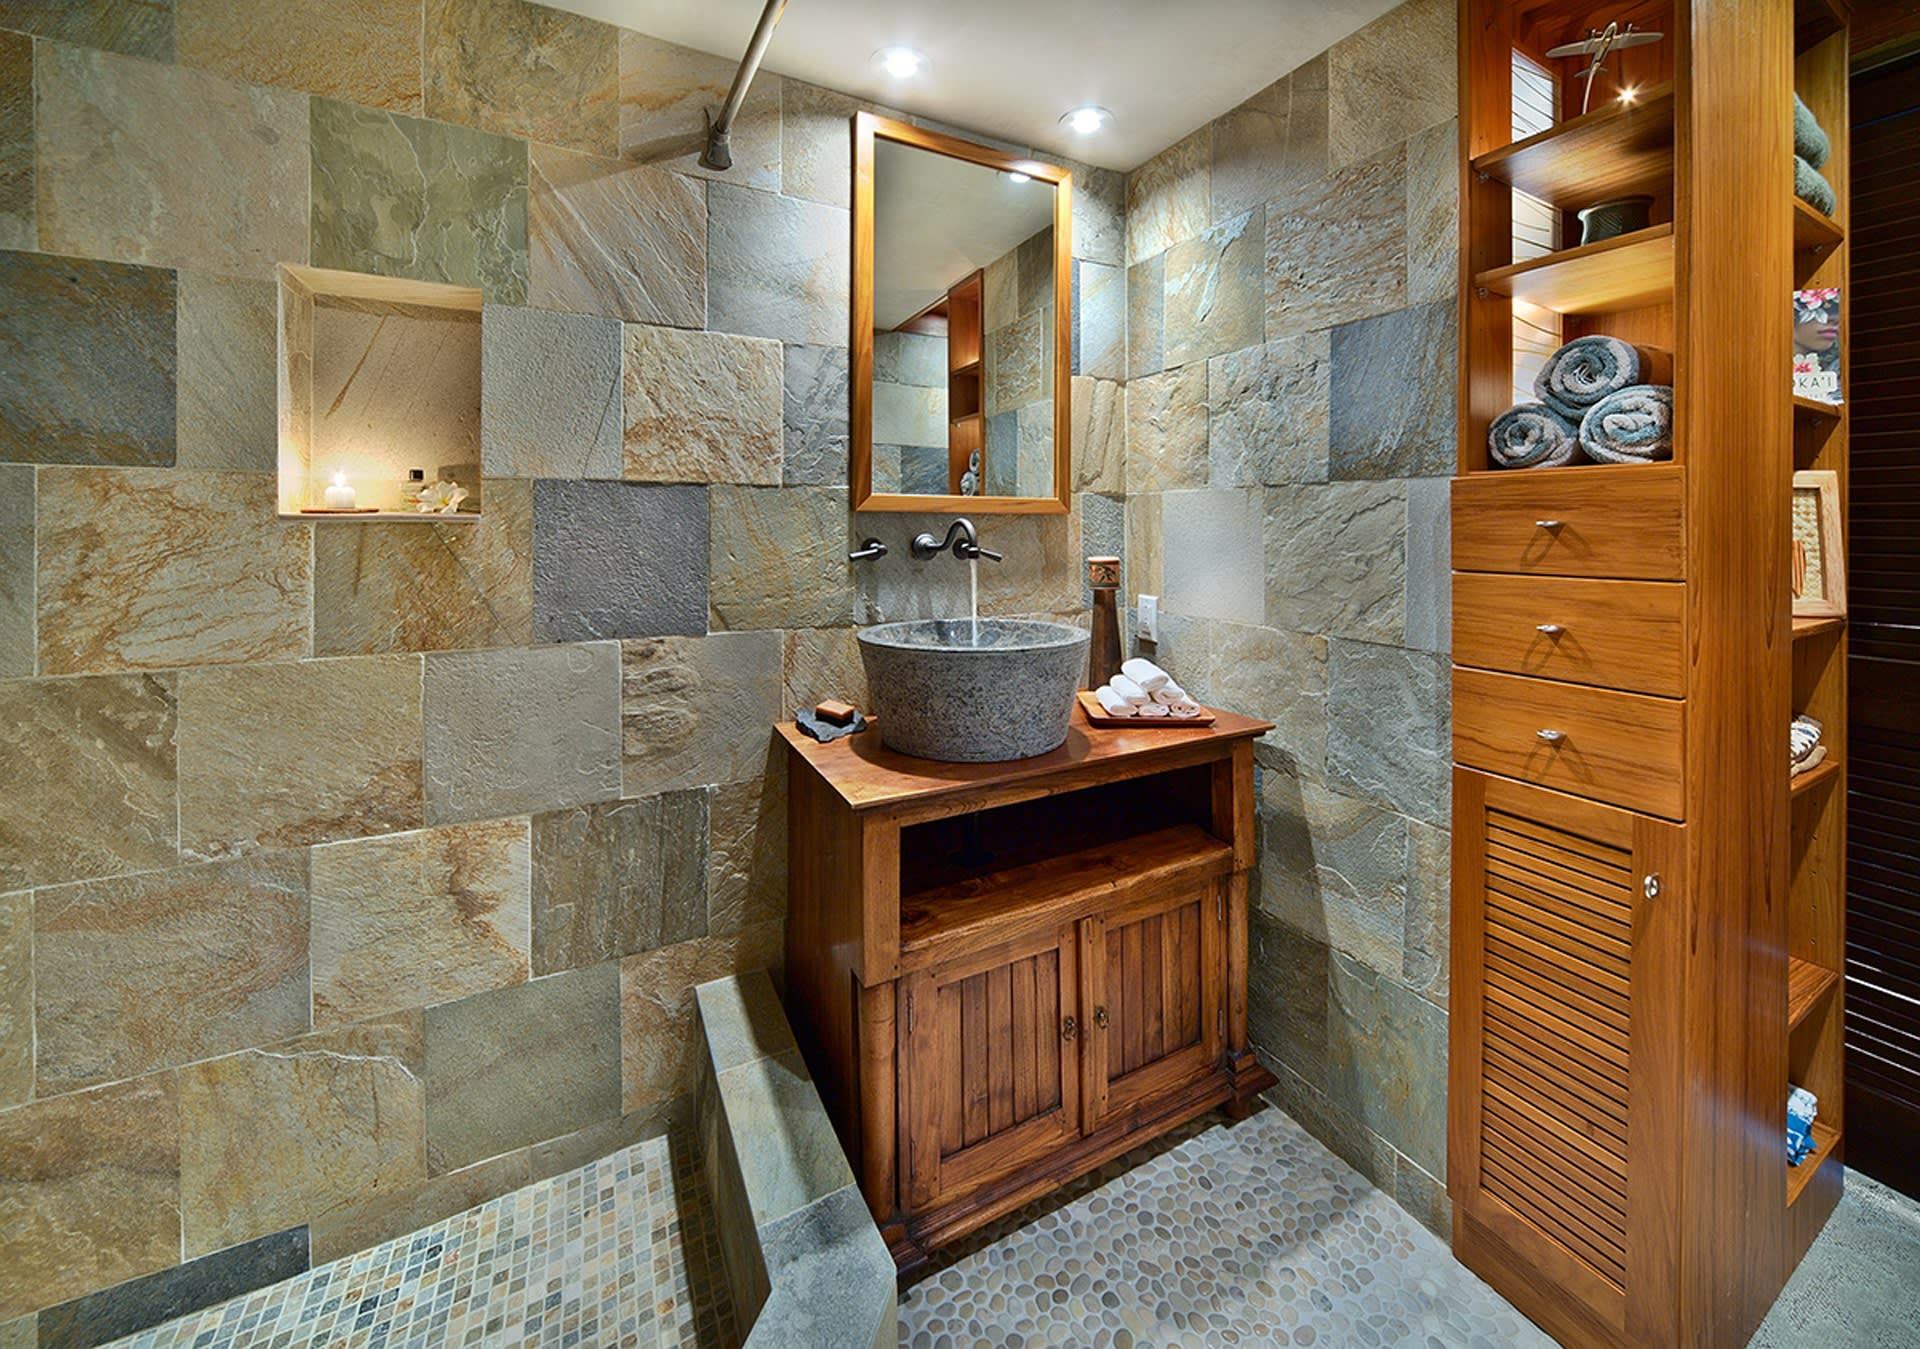 Bedtime routines will be a treat in this sleek bathroom.